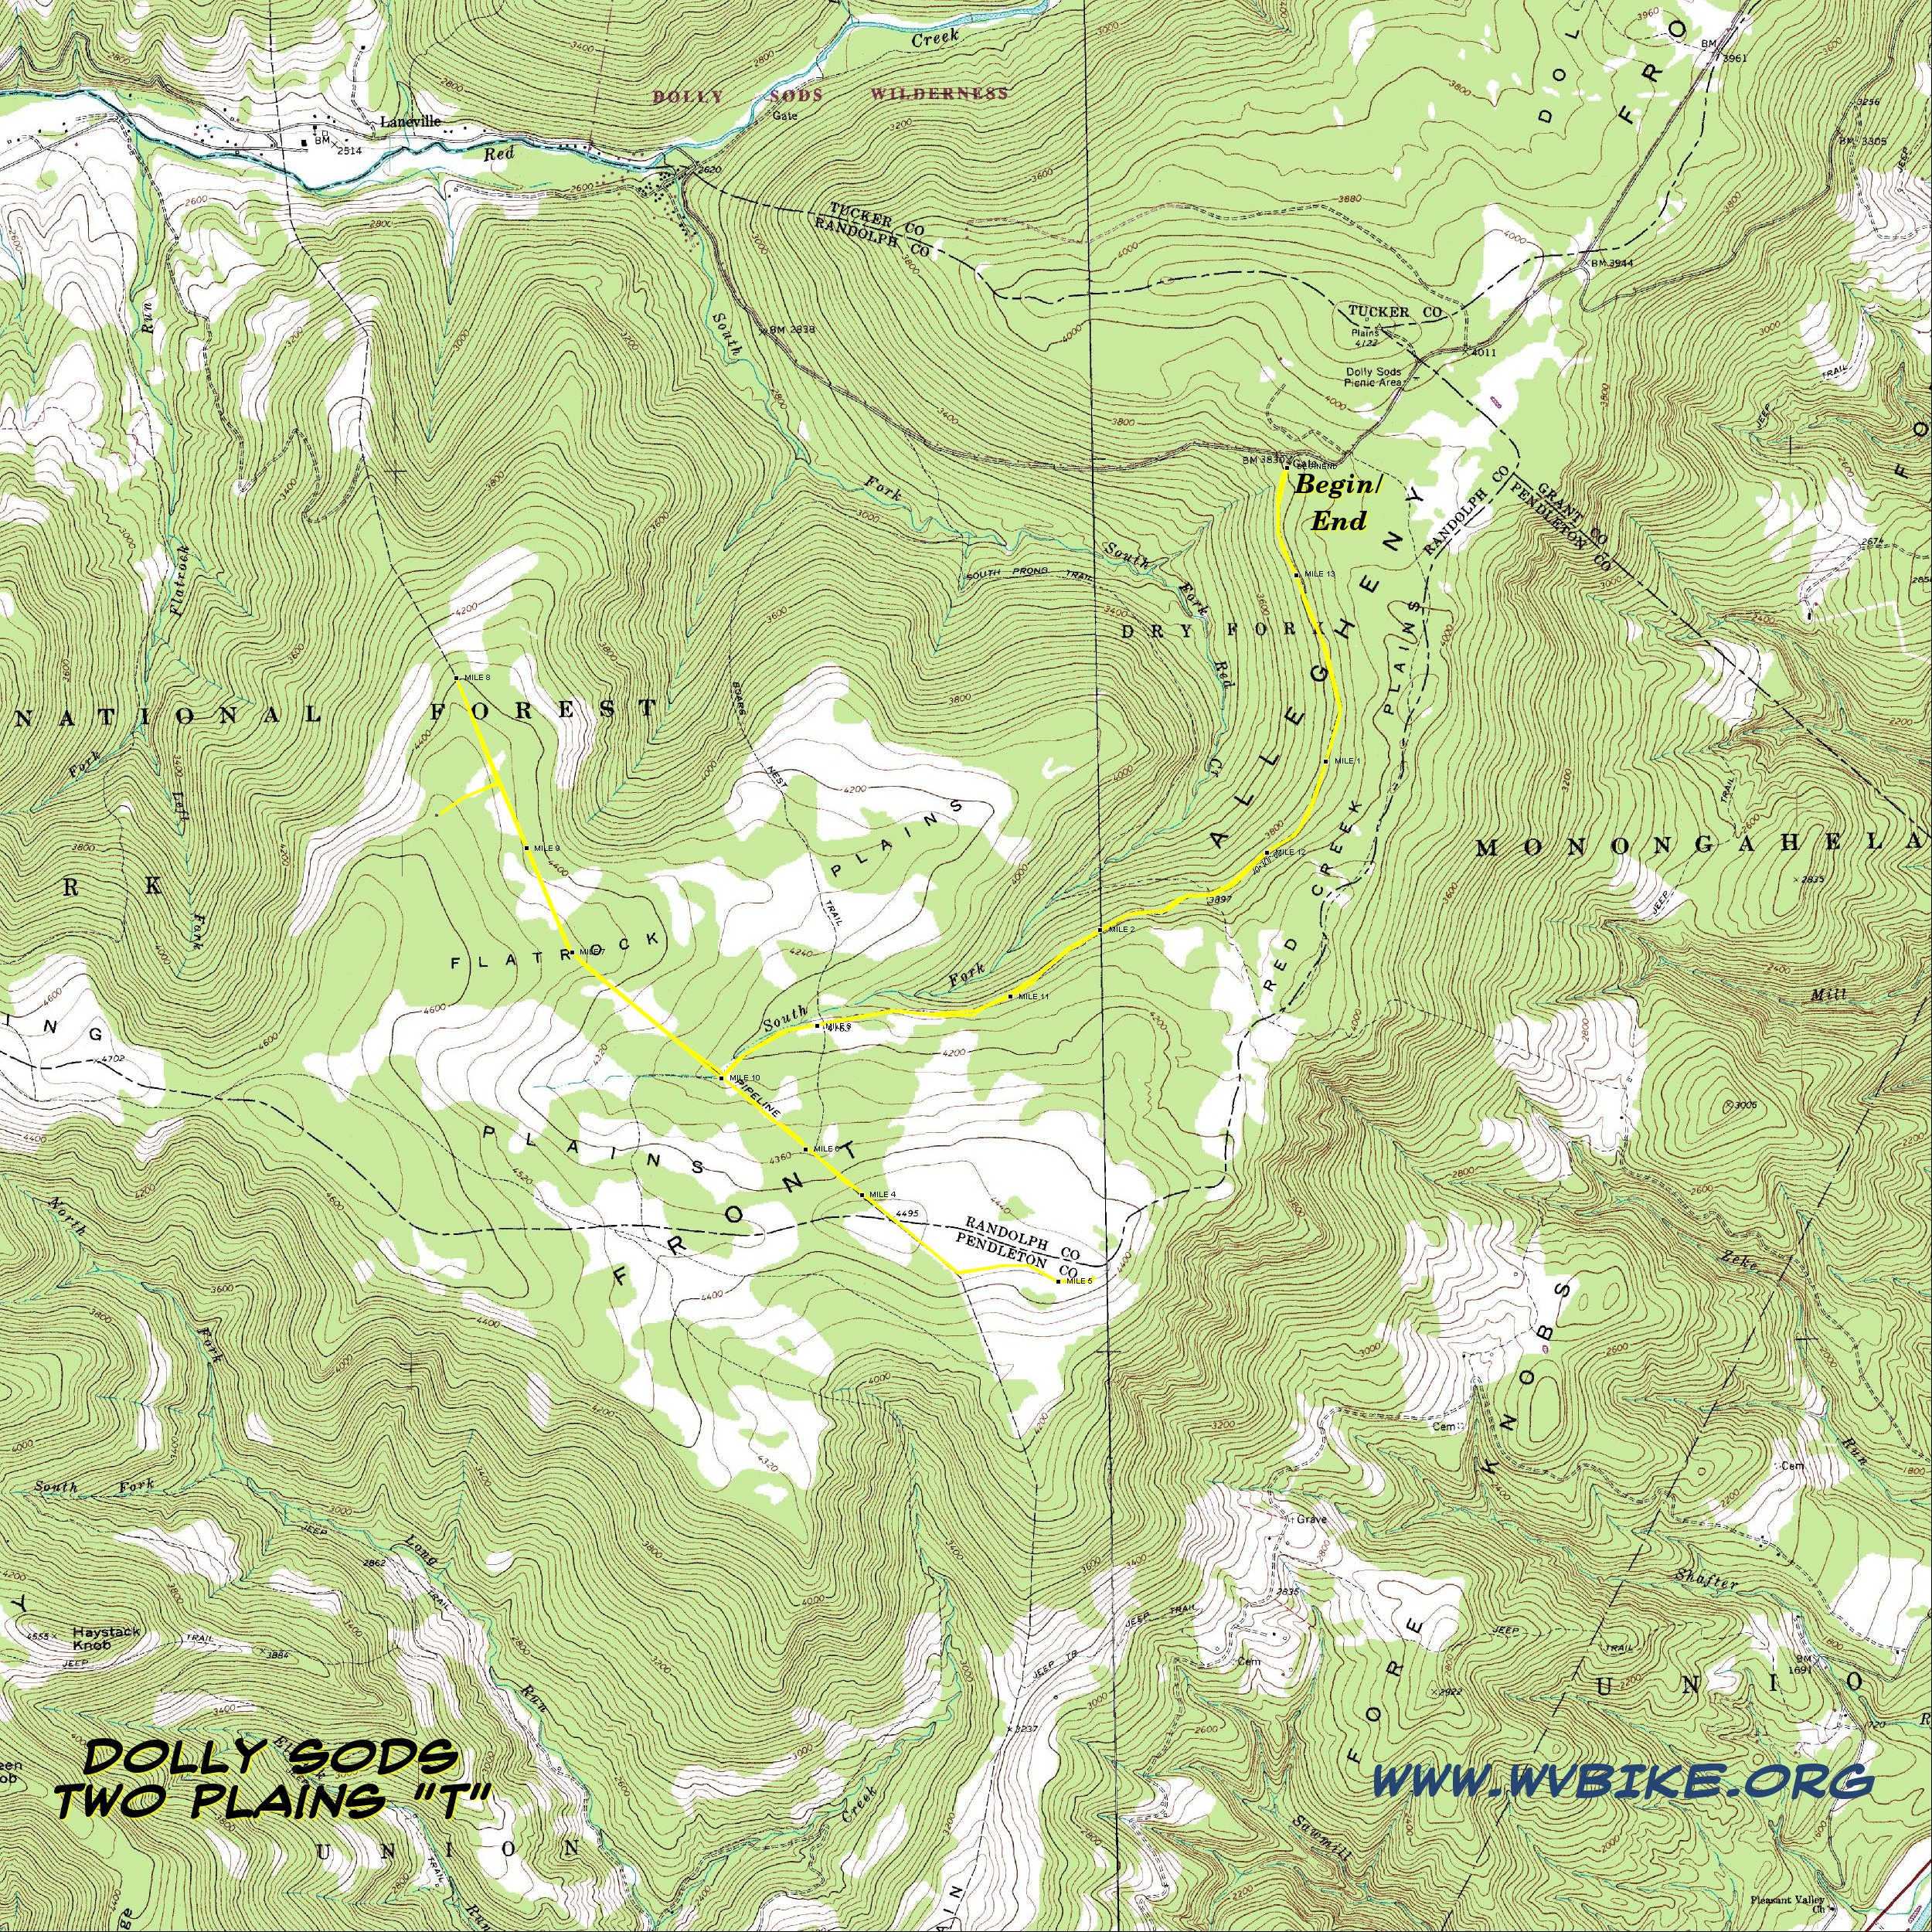 Maps and Aerial Photos of Dolly Sods Two Plains \